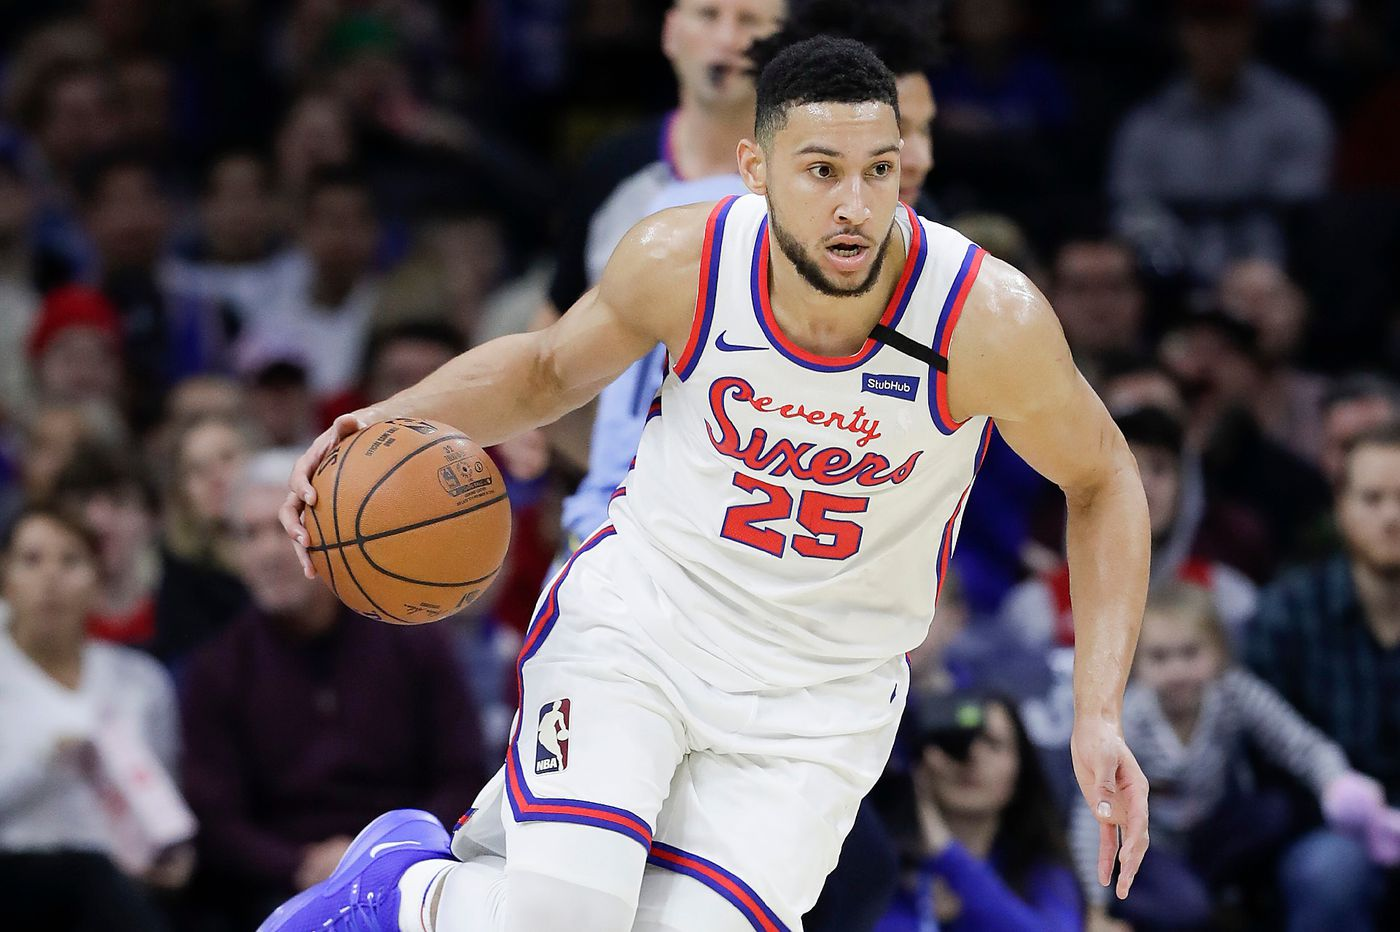 Should Ben Simmons Instagram video get Sixers fans excited? | Off the Dribble